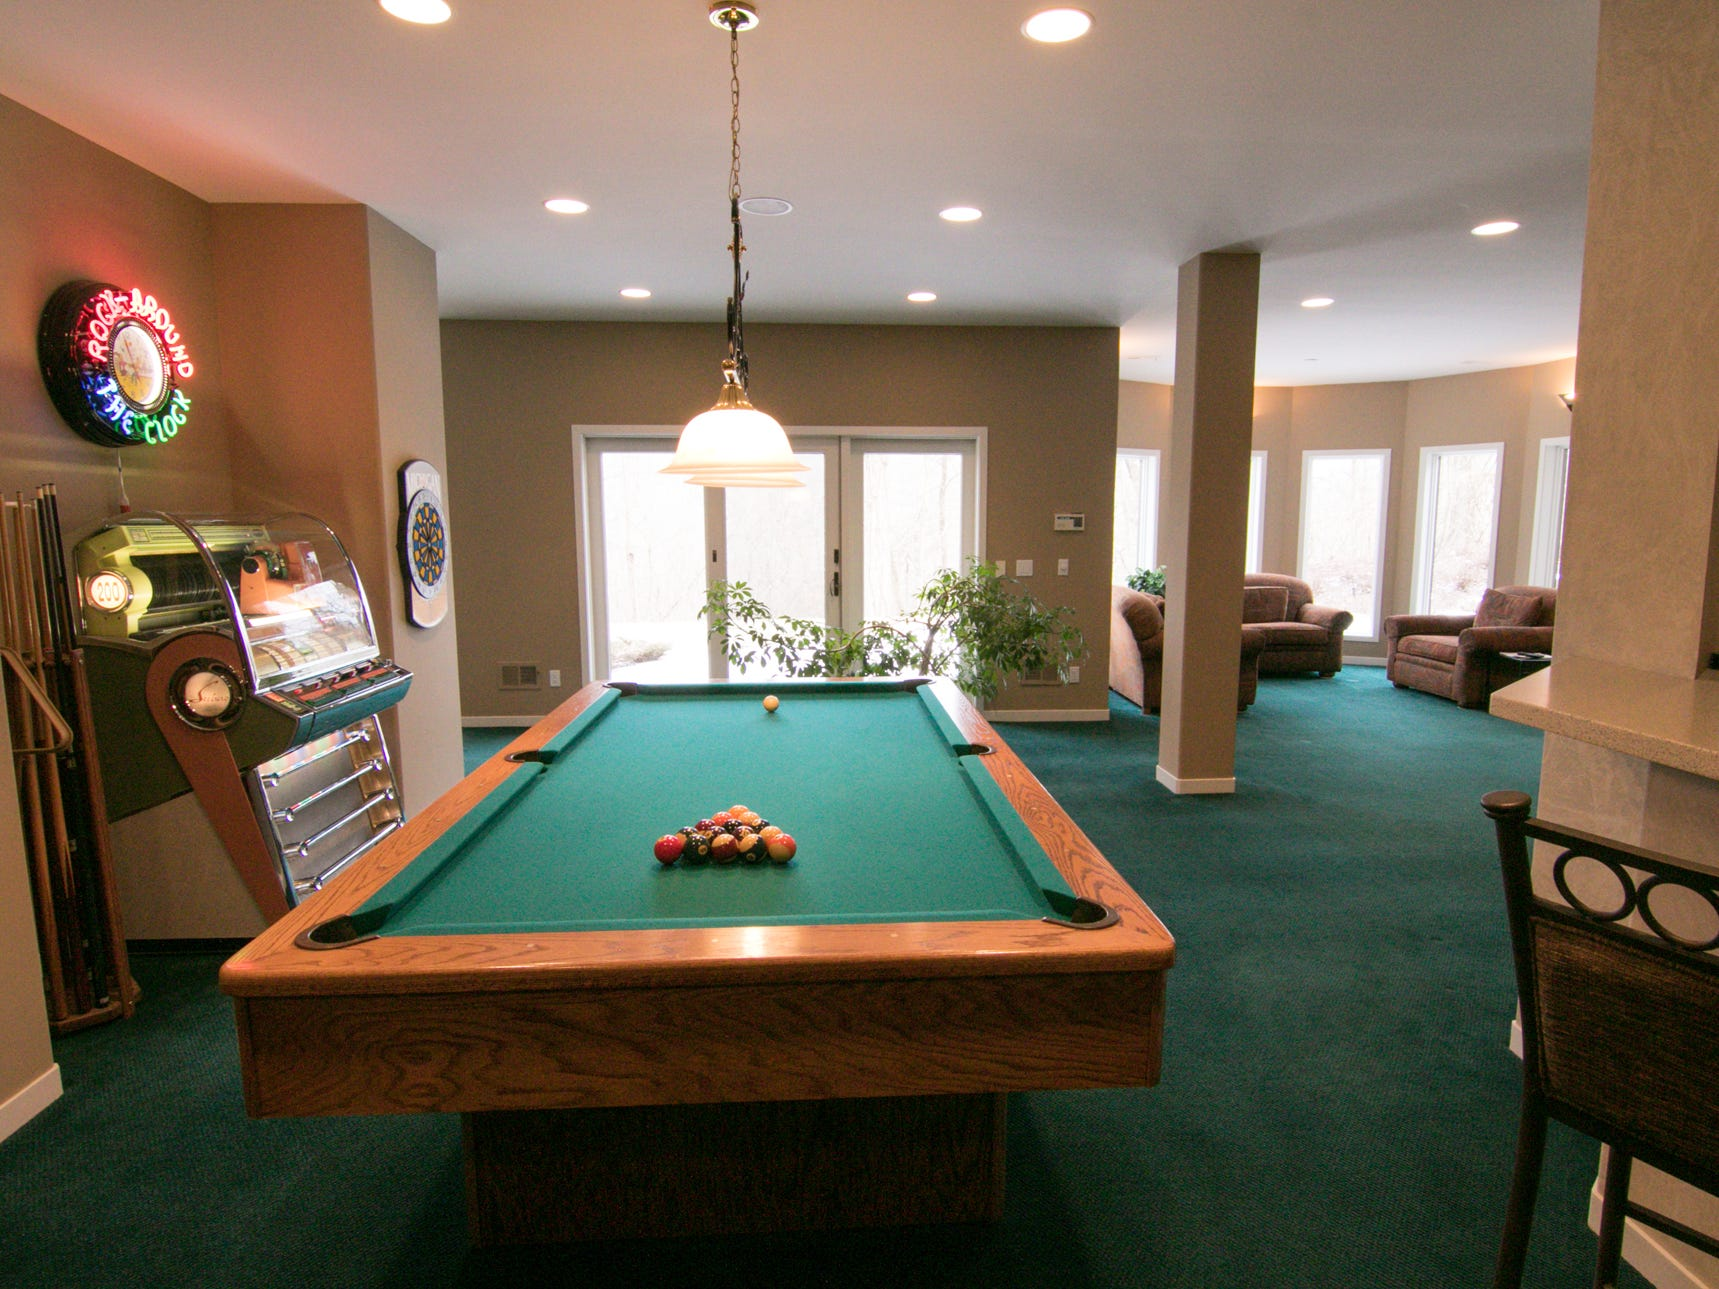 A recreation area in the basement of the Cross Creek Drive home, shown Thursday, Jan. 17, 2019, is decked out with a pool table, jukebox, full kitchen and other entertaining features.